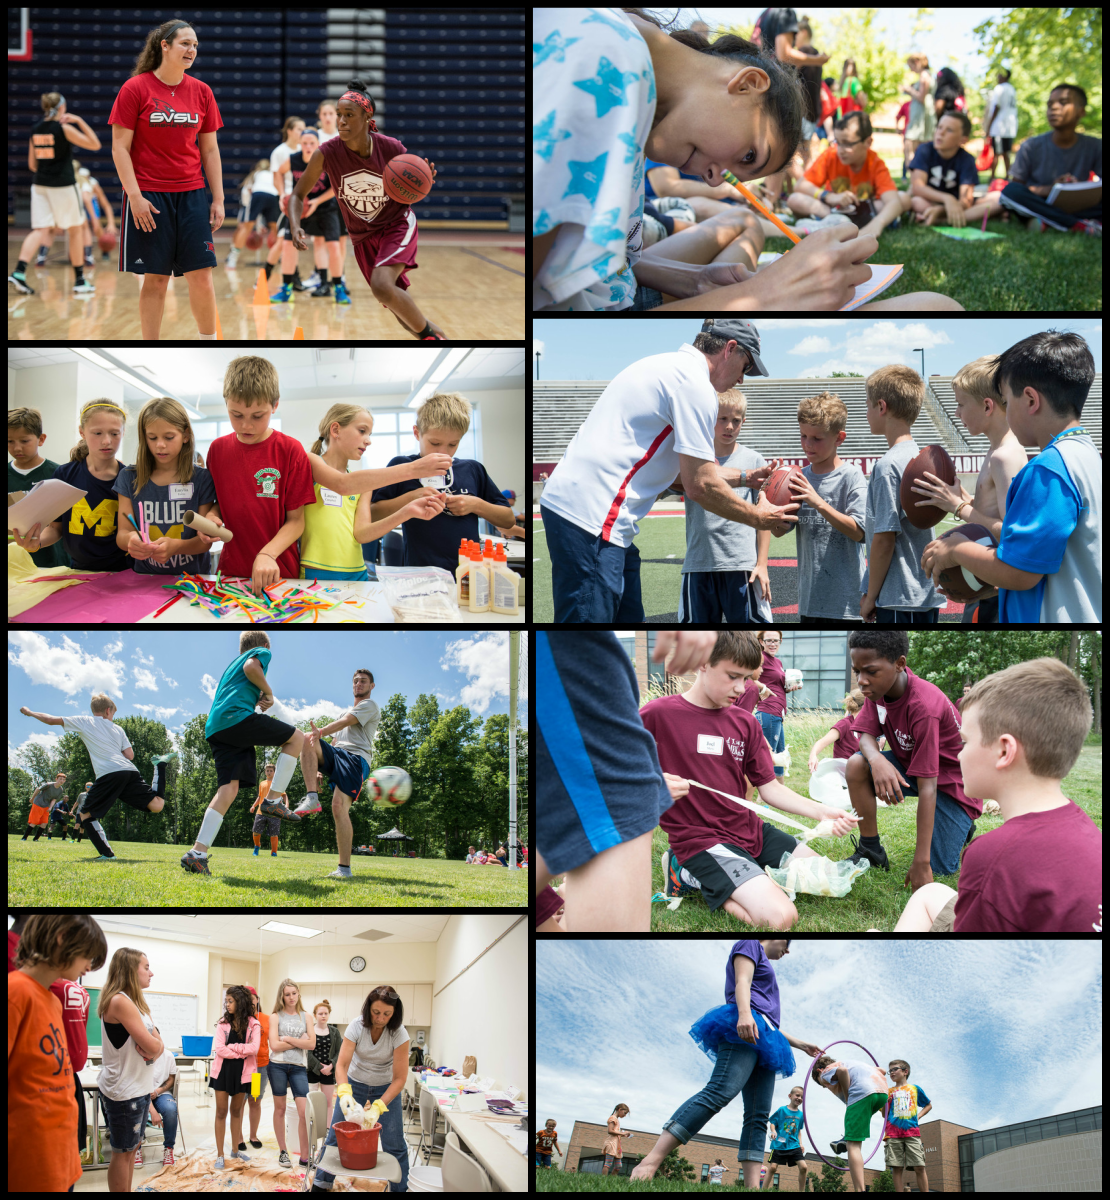 SVSU offers all sorts of summer camp opportunities for children with all types of interests.